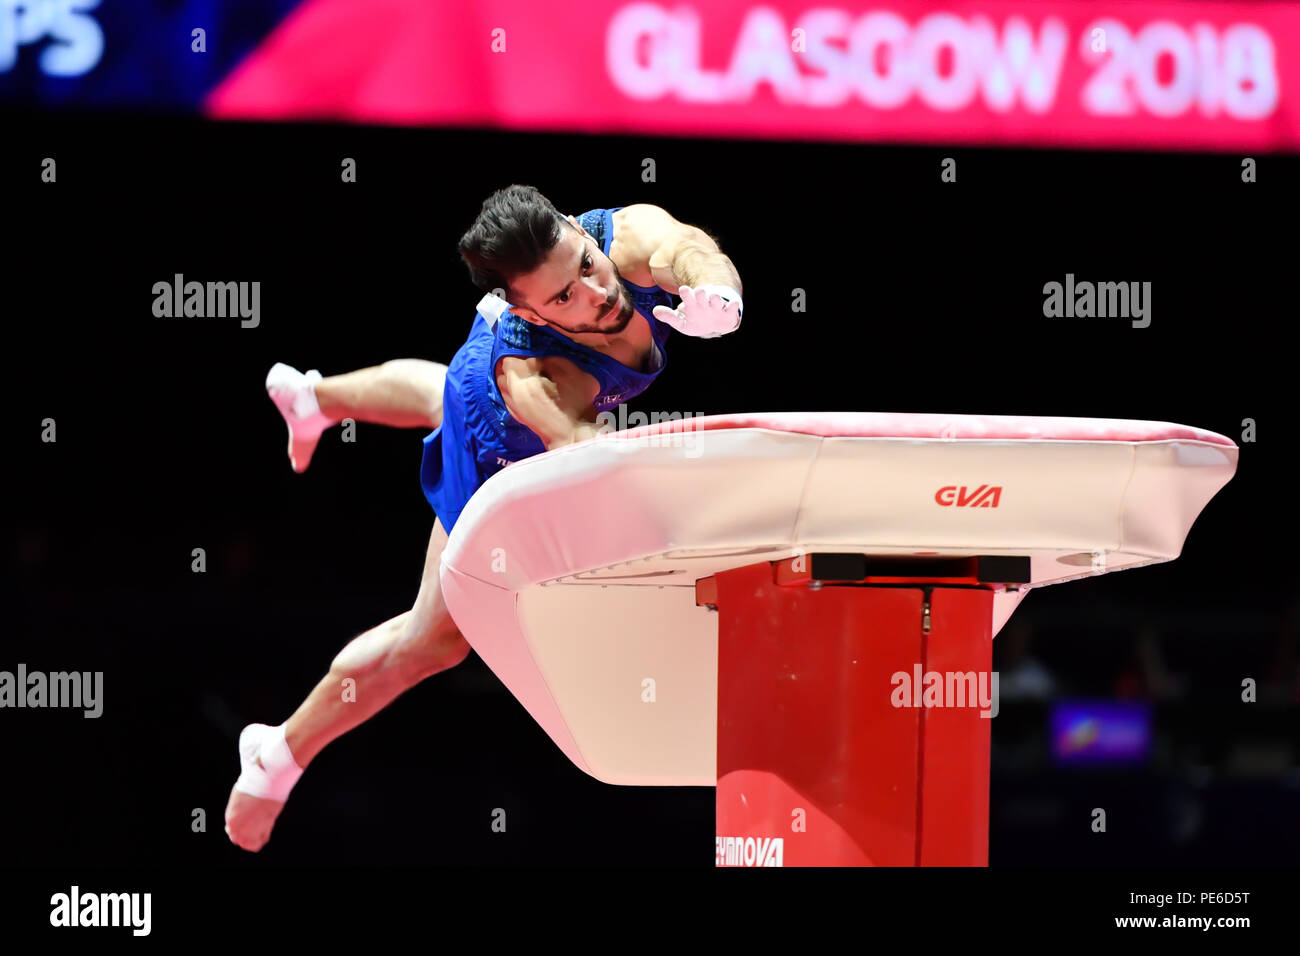 Glasgow, Scotland, UK. 12th August 2018. MEDVEDEV Andrey (ISR) competes on the Vault in Men's Artistic Gymnastics Apparatus Finals during the European Championships Glasgow 2018 at The SSE Hydro on Sunday, 12  August 2018. GLASGOW SCOTLAND. Credit: Taka G Wu - Stock Image